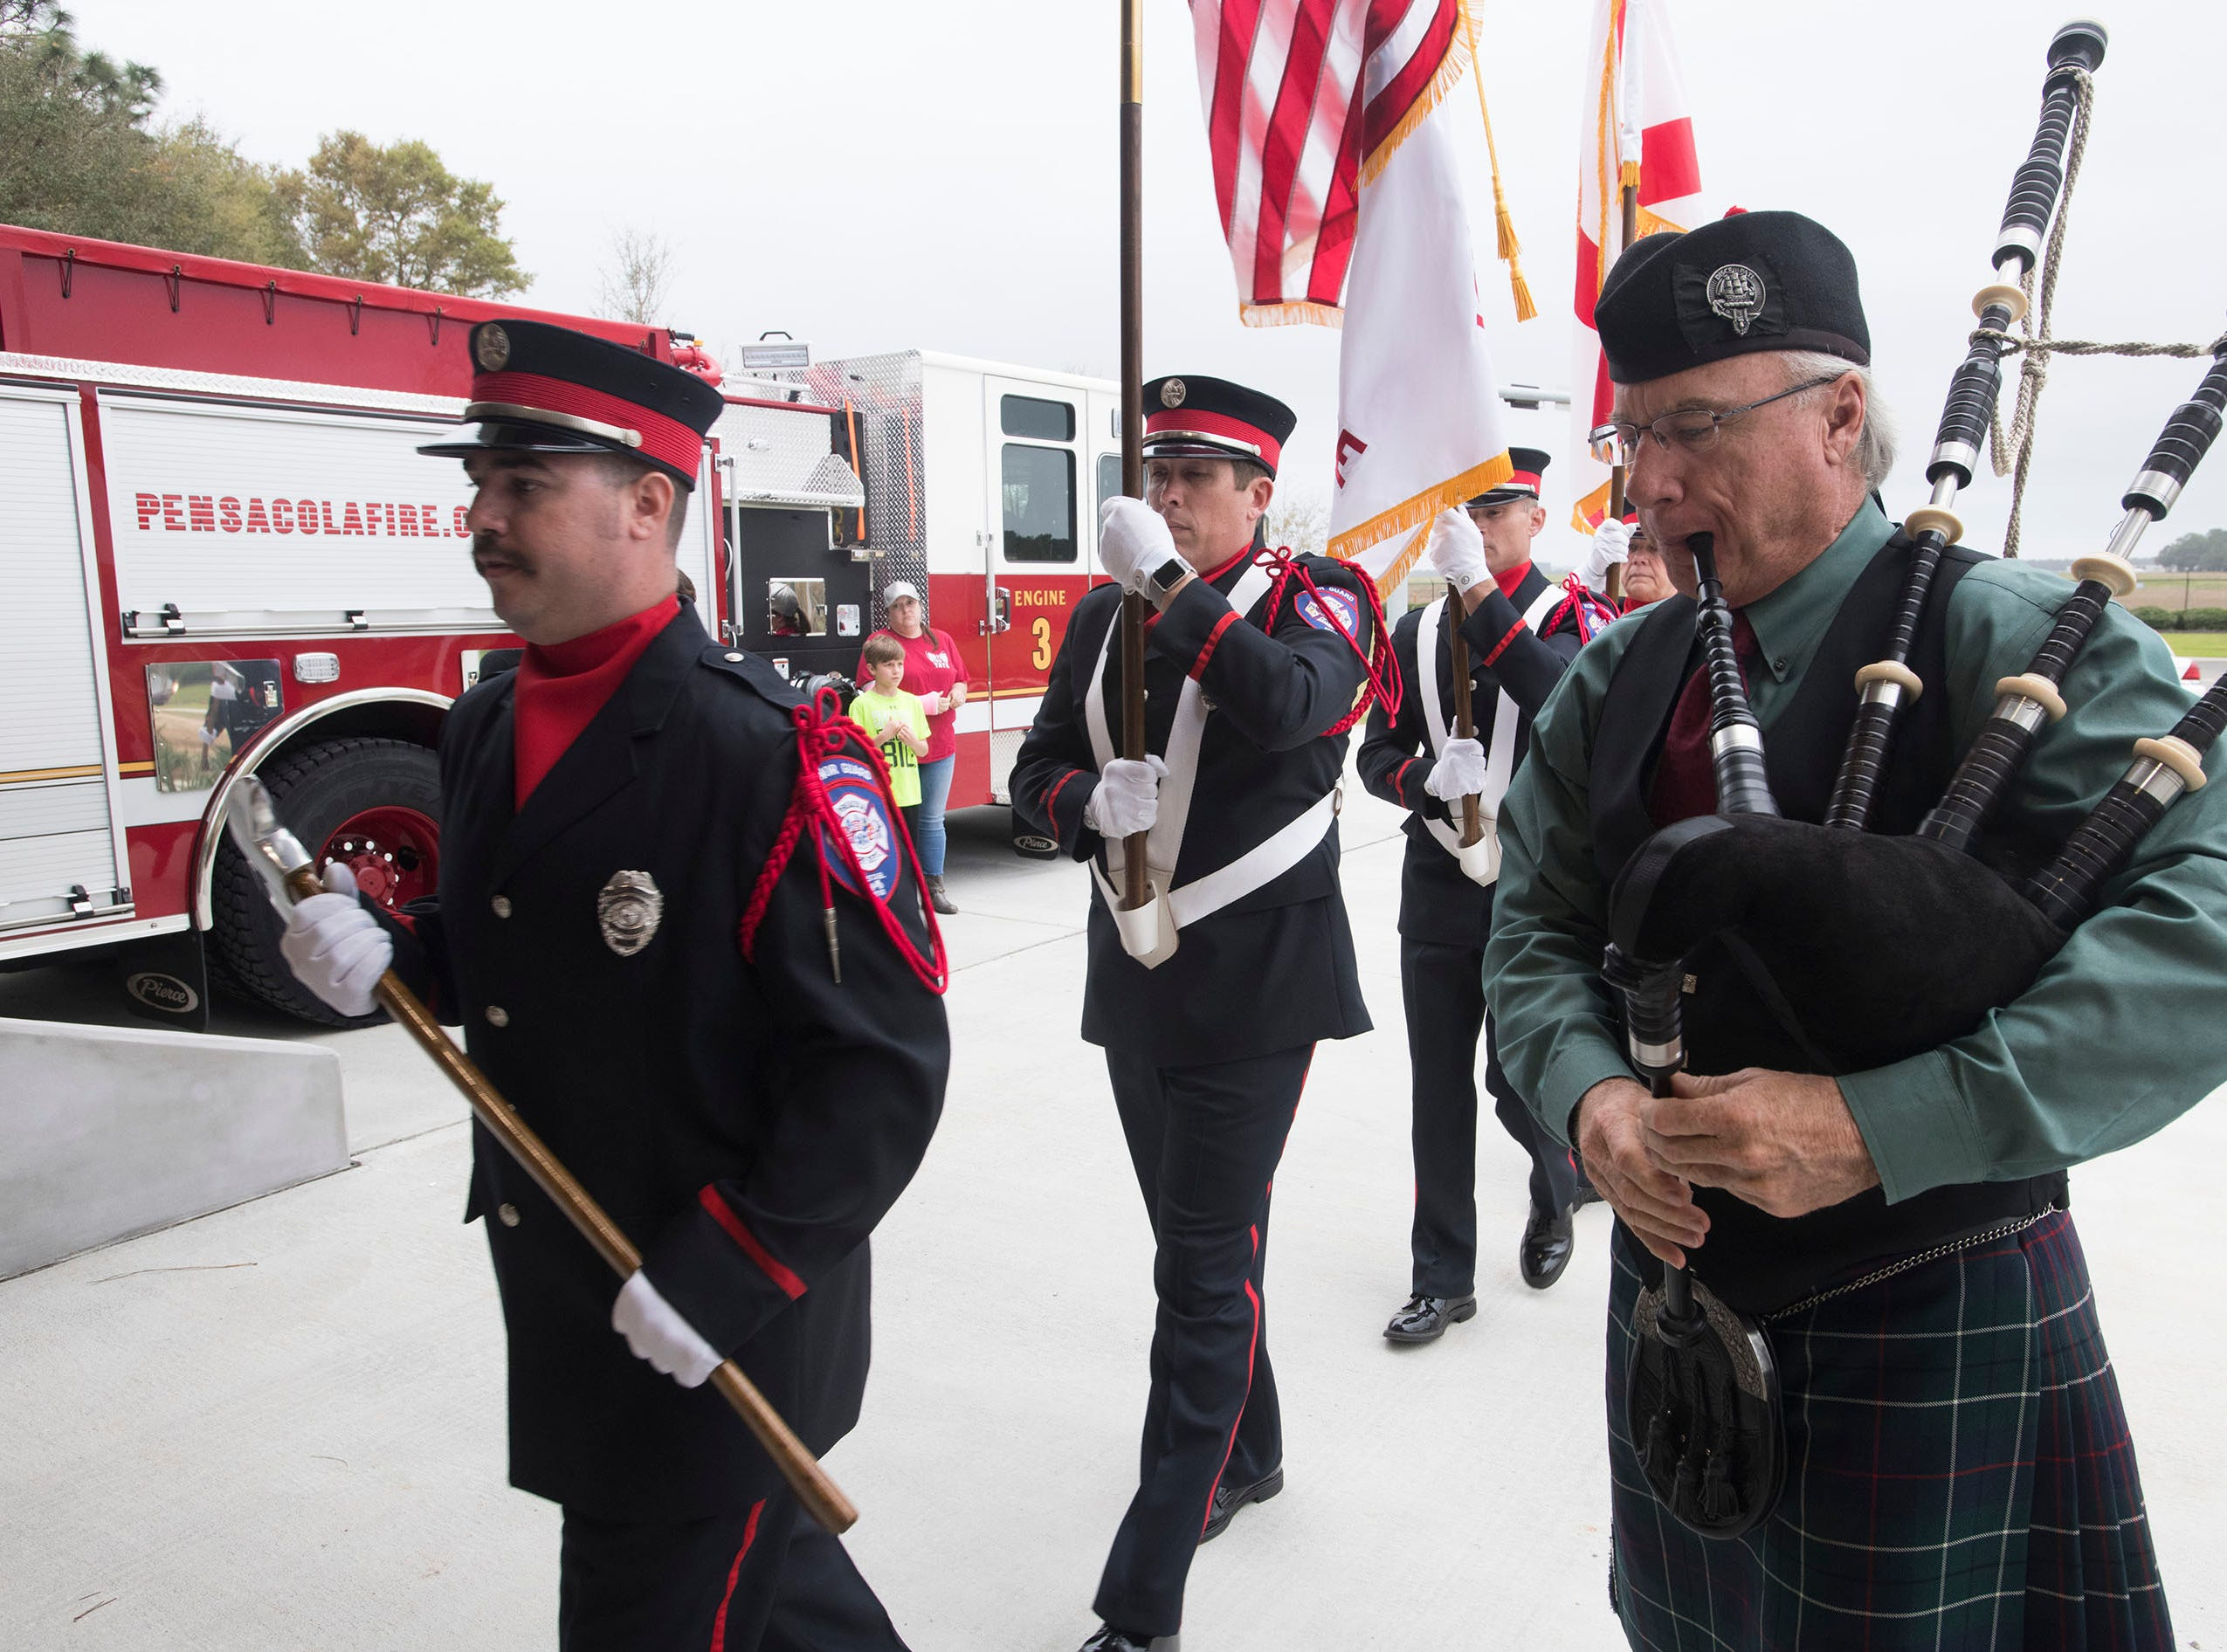 Michael Duncan plays the bagpipes as members of the Pensacola Fire Department's honor guard parades the colors to kick off the dedication ceremony of the department's new station three off Summit Blvd on Thursday, March 14, 2019.